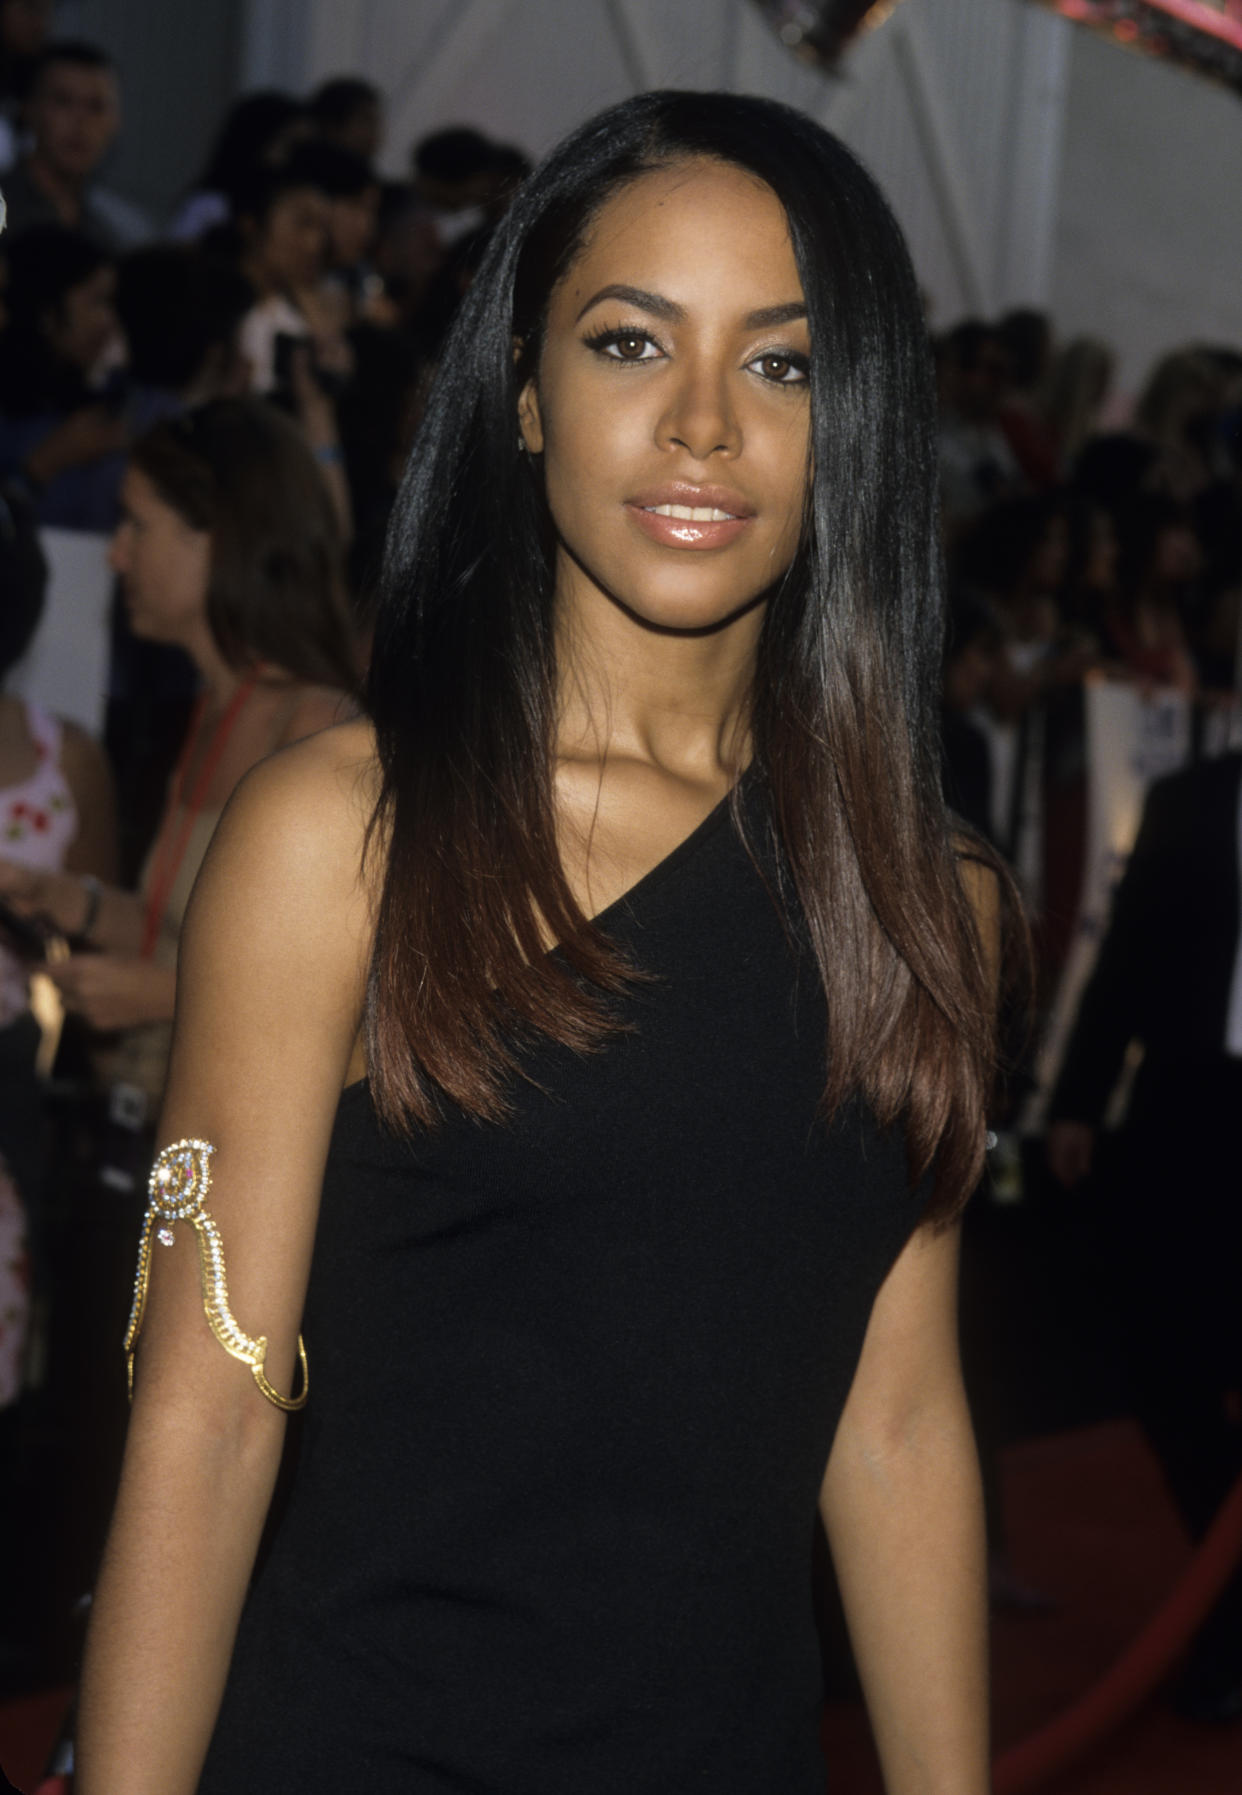 NEW YORK, NY - JULY 27:  Aaliyah attends the 2000 MTV Movie Awards at Sony Studios on June 3, 2000 in Culver City, California.  (Photo by Kevin Mazur/WireImage)